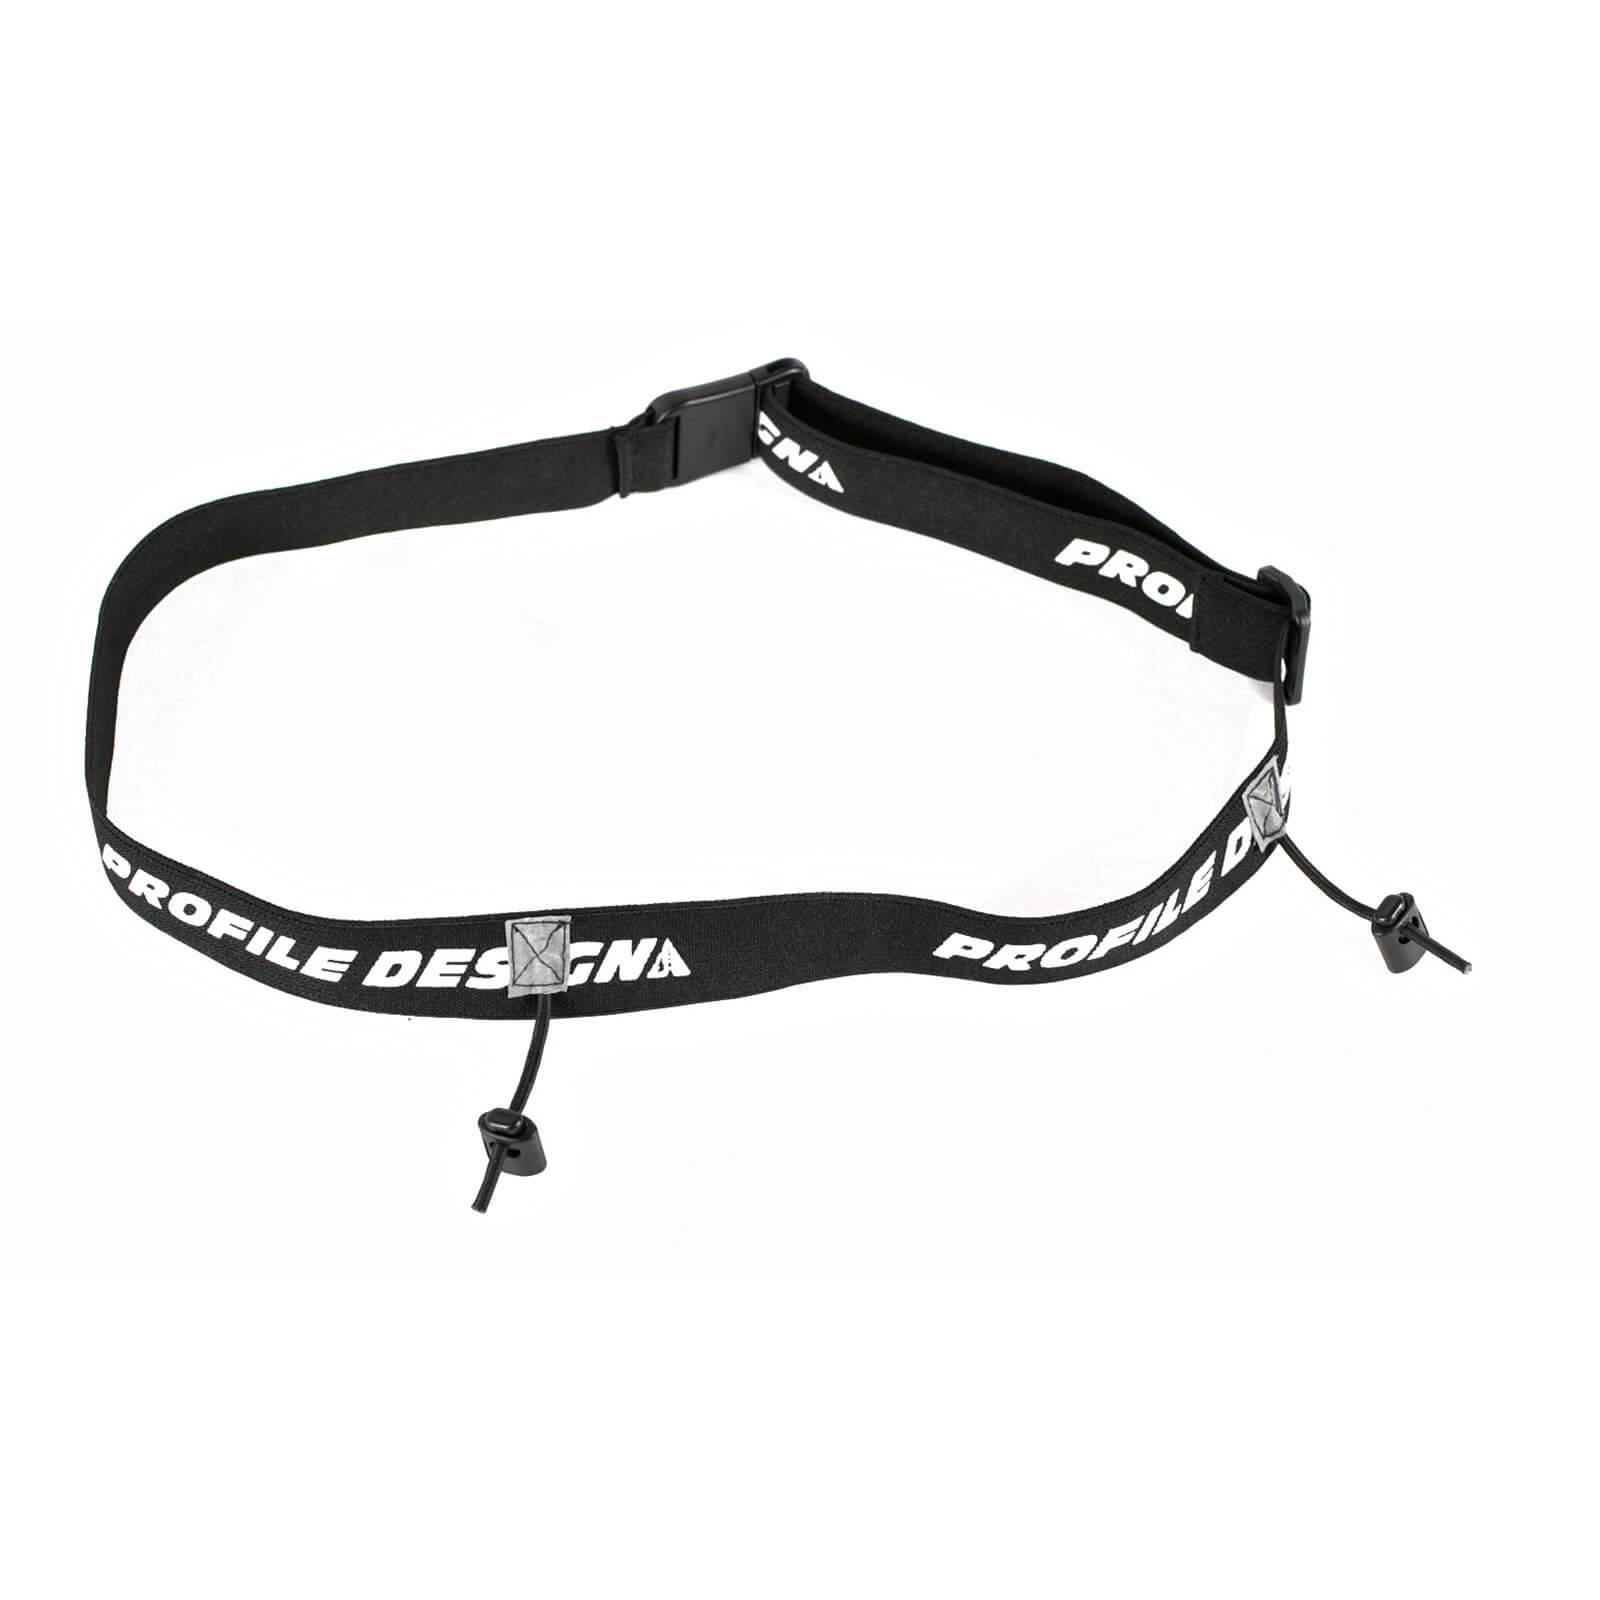 Profile Design Profile Design Race Number Belt - Black